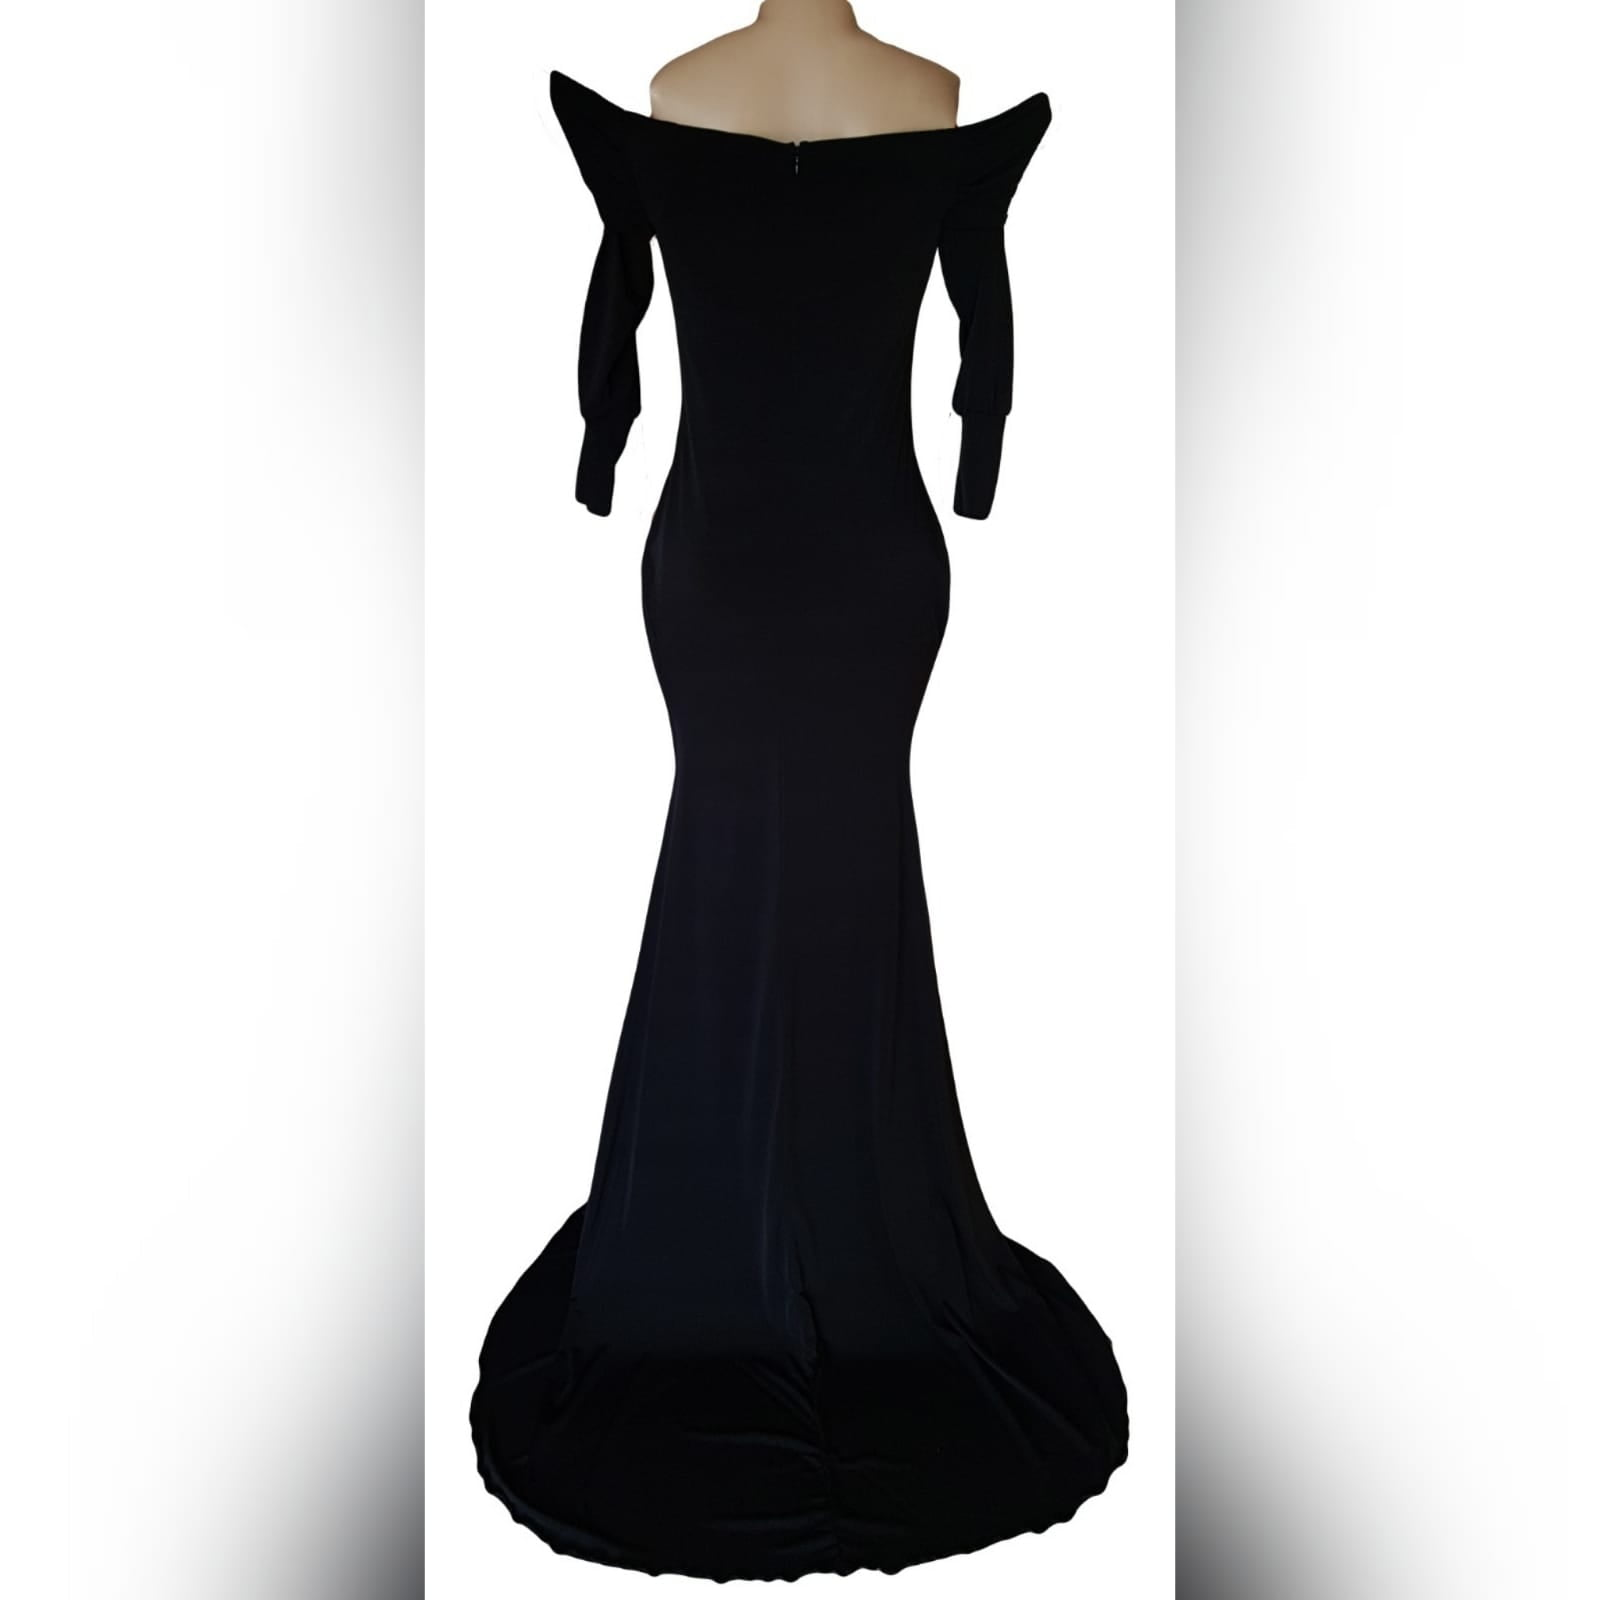 """Simple elegant off shoulder black dress 2 <blockquote>""""the woman who follows the crowd will usually go no further than the crowd. The woman who walks alone is likely to find herself in places no one has ever been before. """"albert einstein</blockquote>a simple elegant off shoulder black dress created for my client to fit her like a glove. The perfect black dress to go to any formal event."""